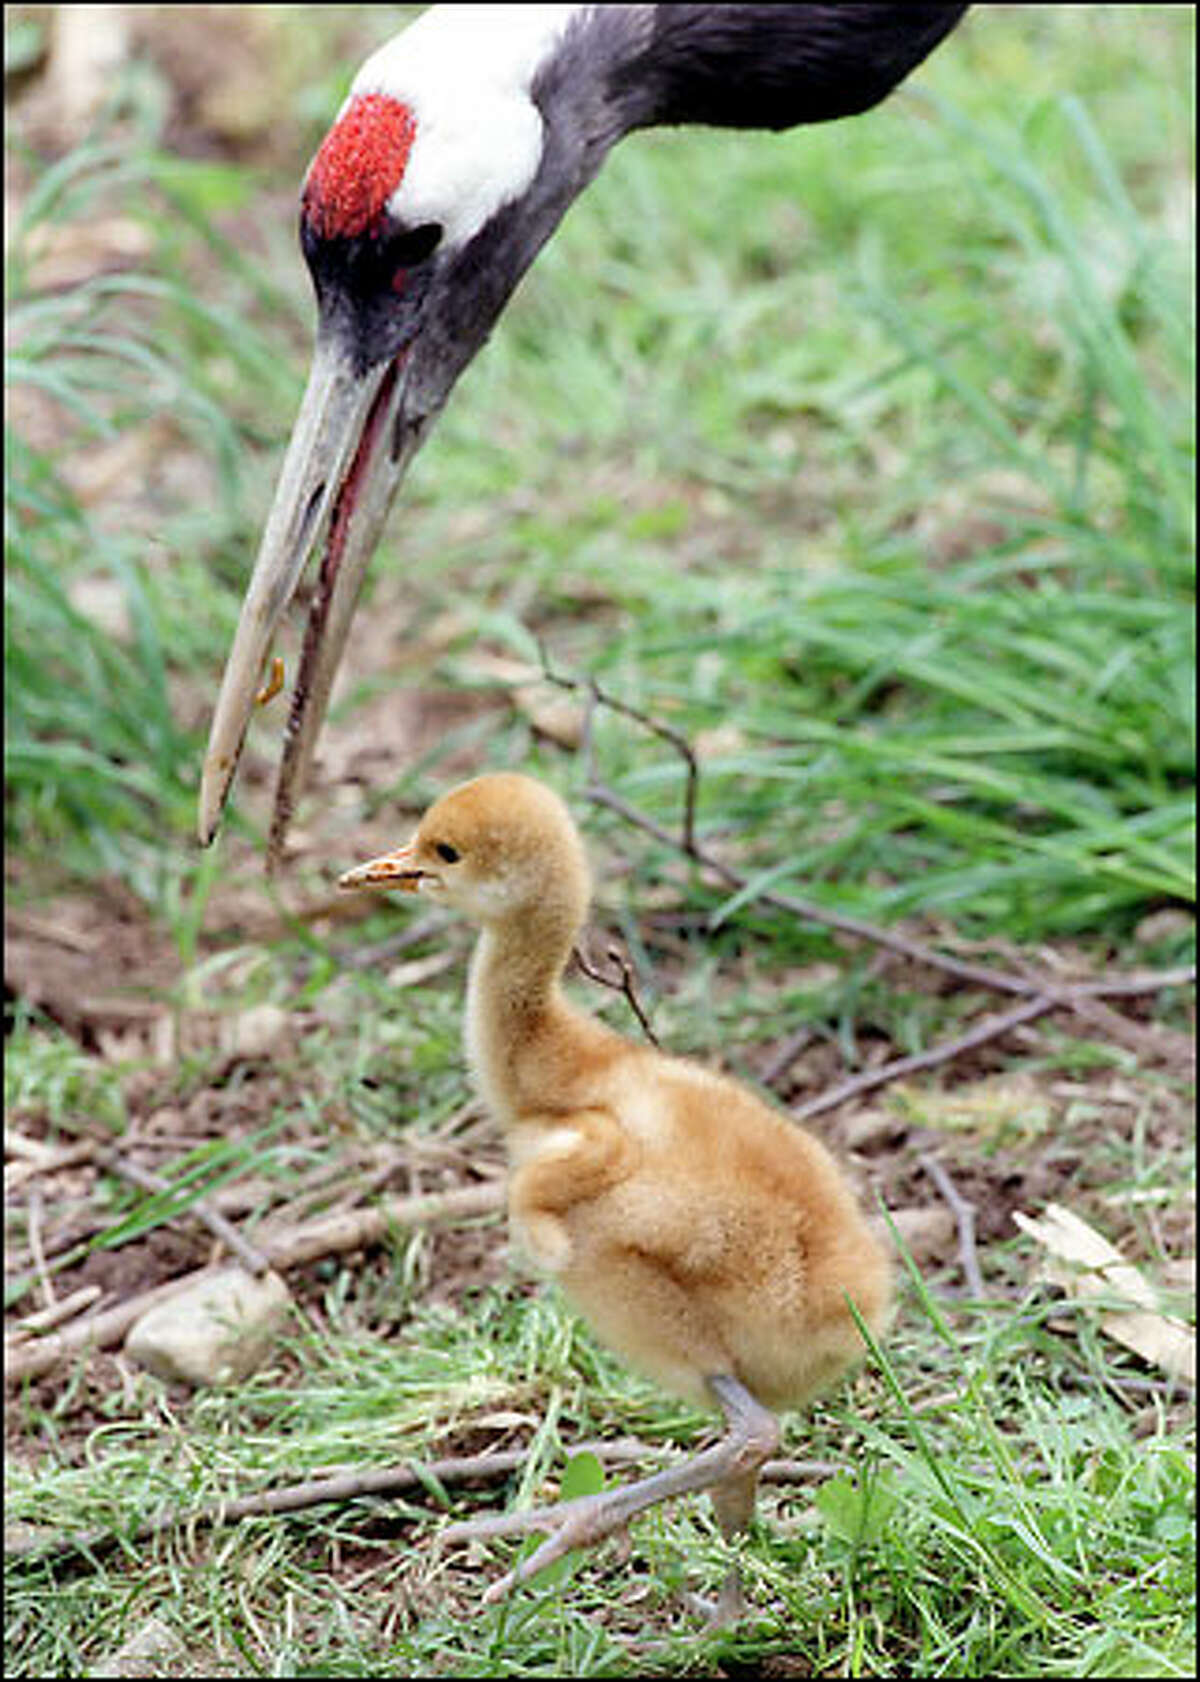 This is a one-week-old baby Red-Crowned Crane at Woodland Park Zoo. The chick is watched over by it's dad.